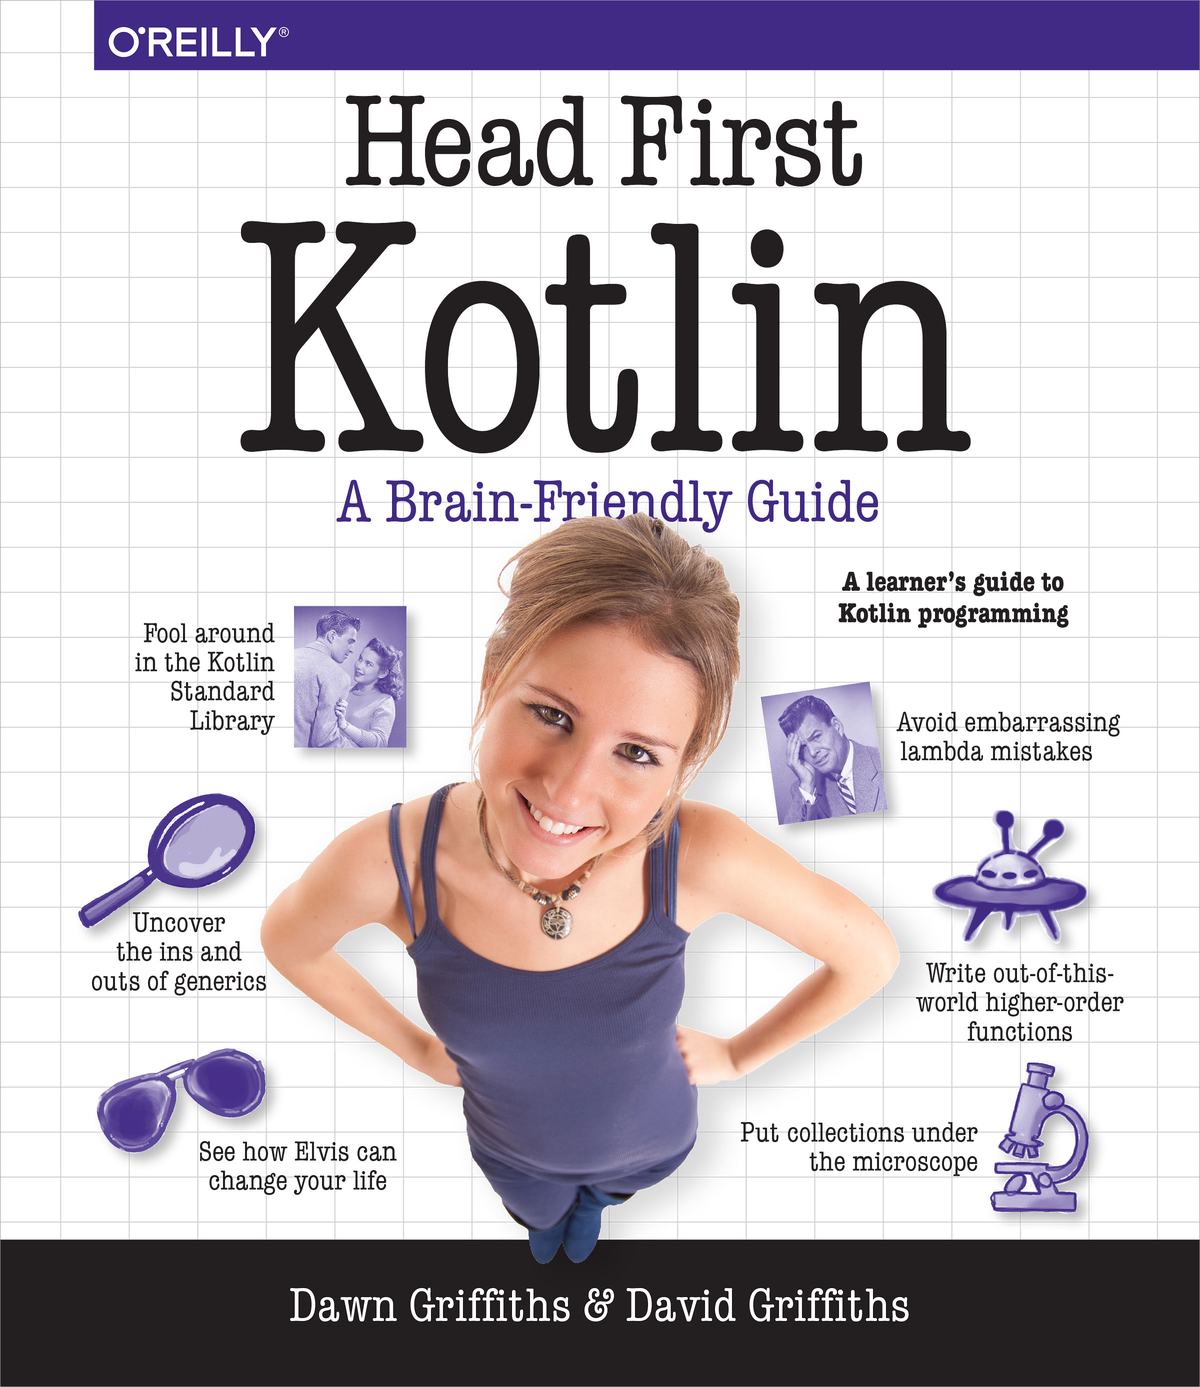 Head First Kotlin: A Brain-Friendly Guide 1st Edition Pdf Free Download